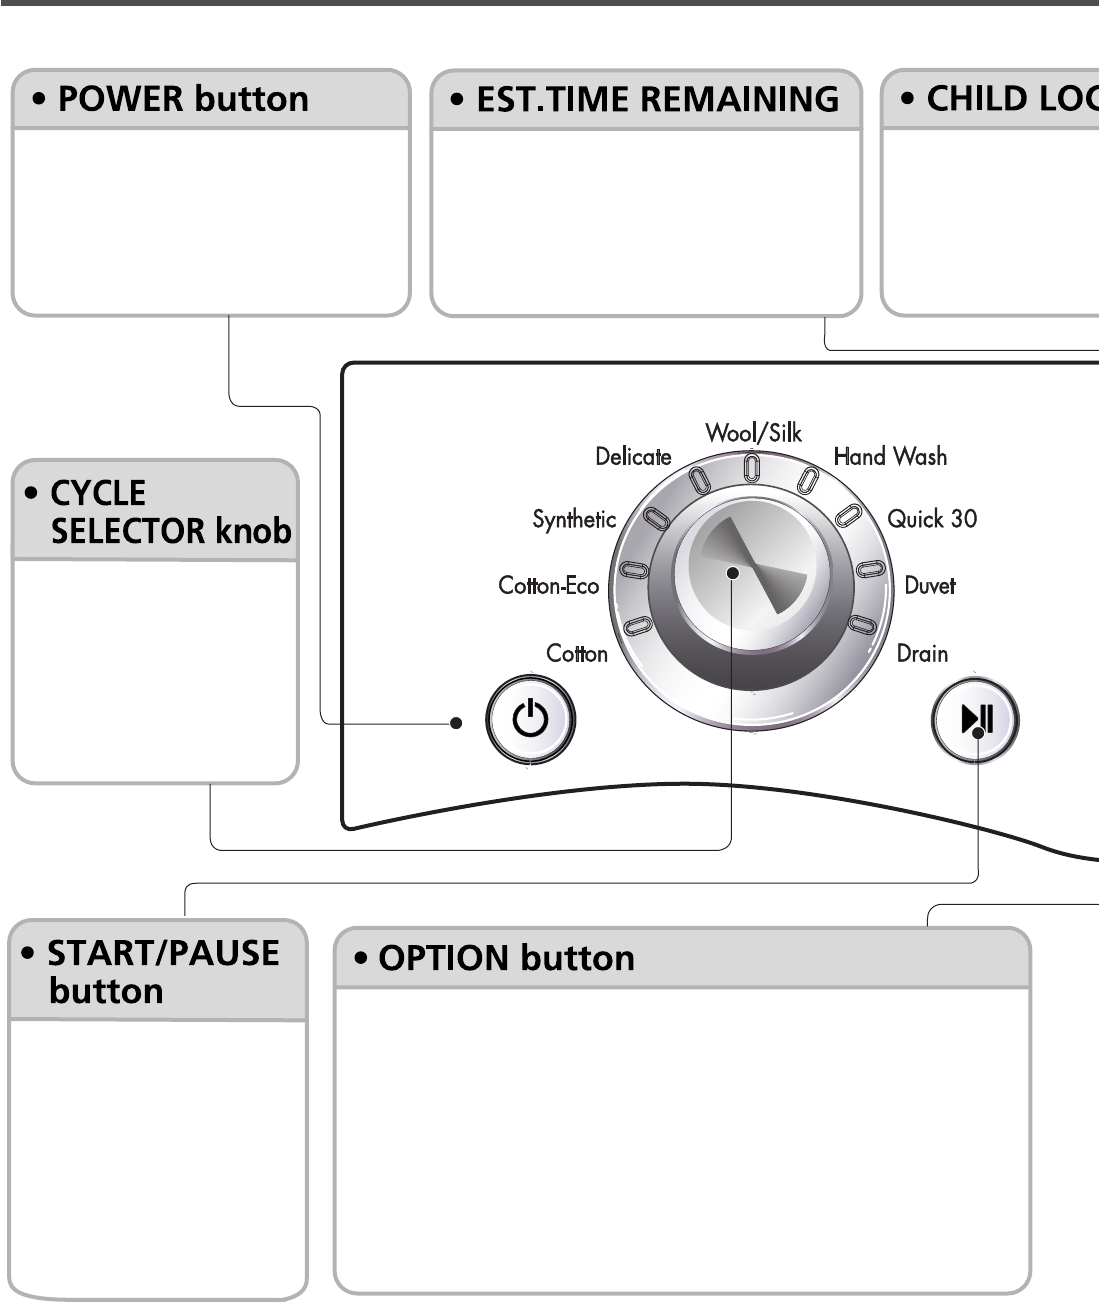 pro user battery charger instructions